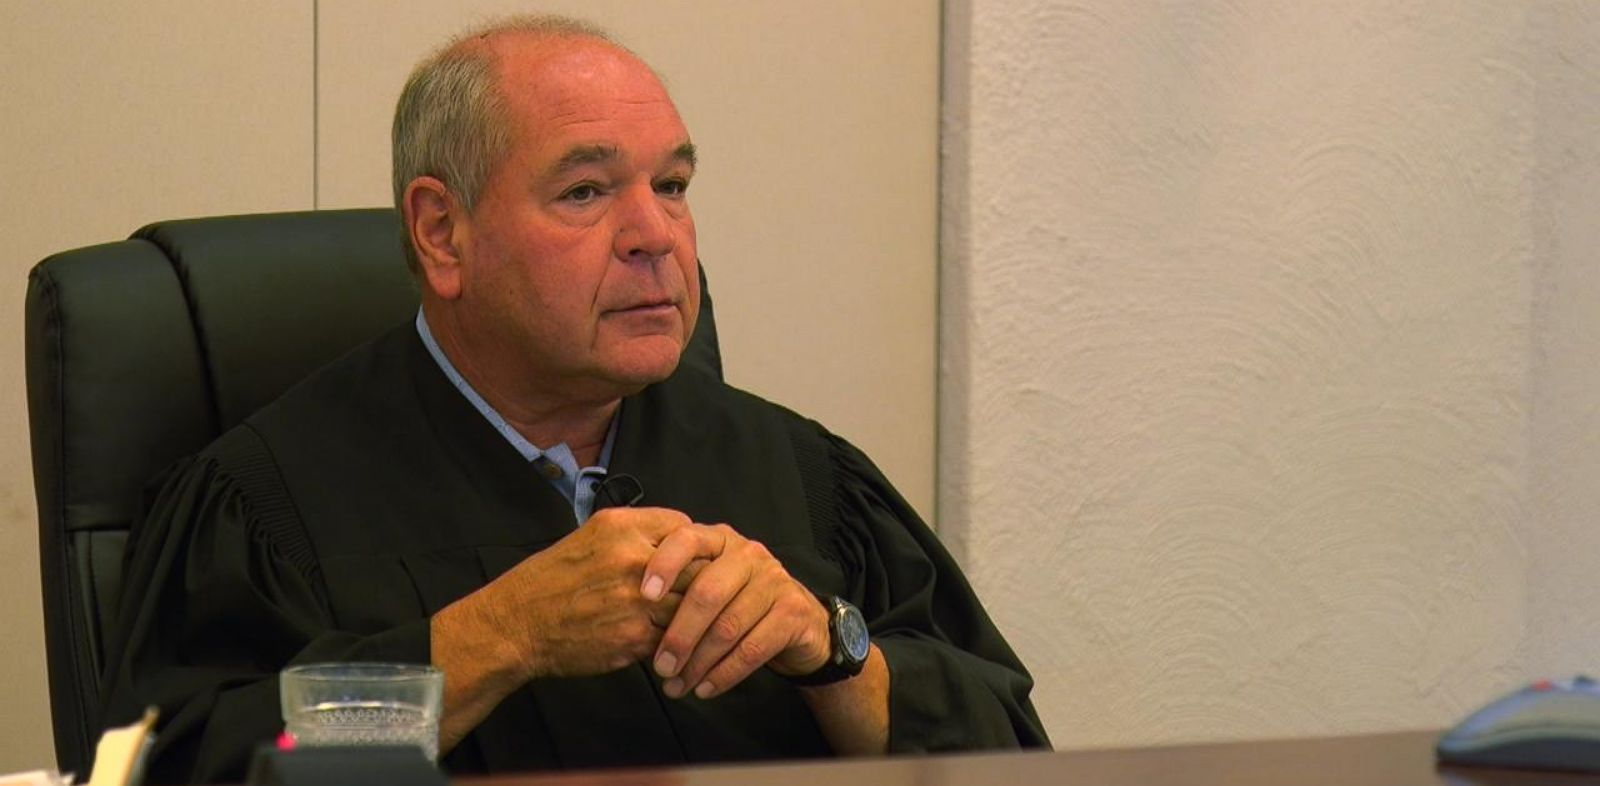 Judge Michael Cicconetti has become a viral sensation for his unique method of sentencing from his Painesville, Ohio, courtroom.